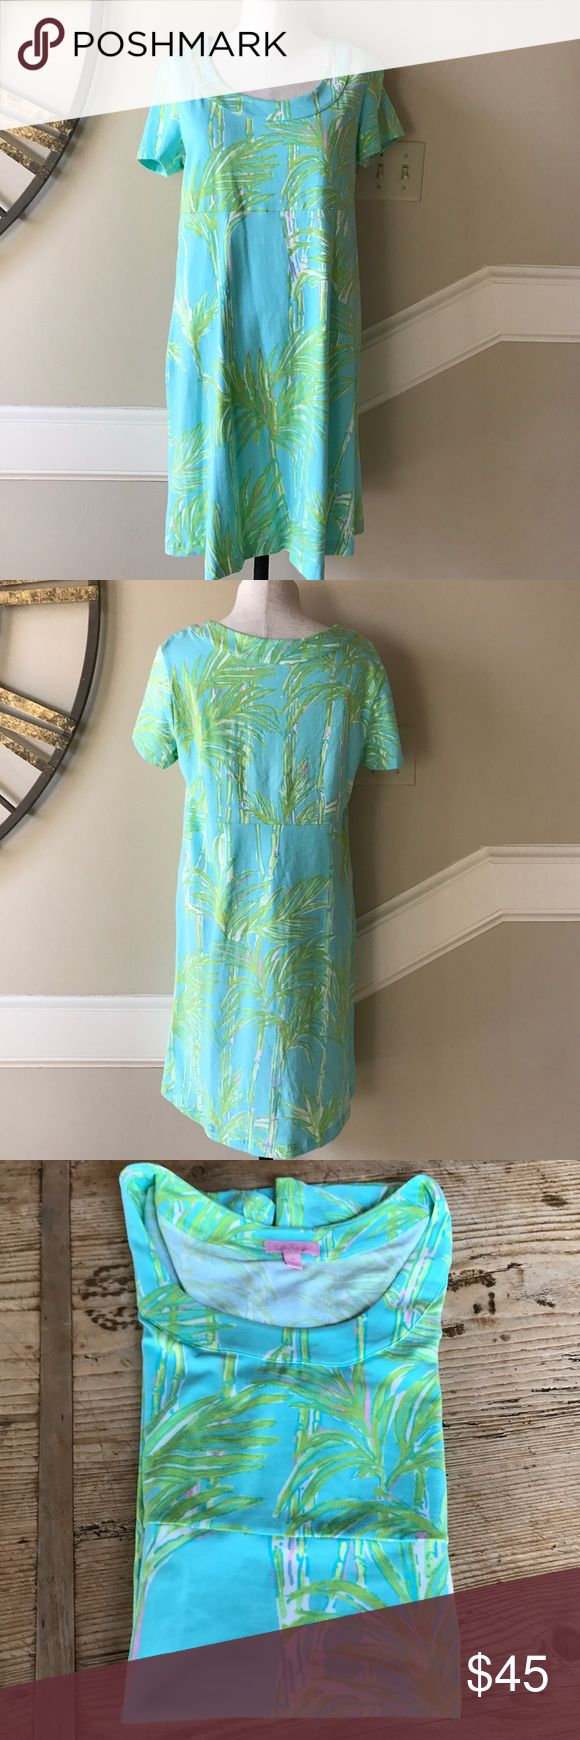 Lilly Pulitzer Kelsey knit dress size M Super cute and oh so comfortable Lily Pulitzer Kelsey knit dress size medium. No flaws. You will lounge around the pool or beach in this all day long. This Lilly Pulitzer dress has the tropical shades and palm tree pattern to get you resort-ready. Wear with your favorite nude sandals for a casual, airy look. Surf blue/palm tree print knit. Scoop neckline. Short sleeves. Seamed Empire waist. Skirt falls straight above knee. Cotton/spandex. Imported…